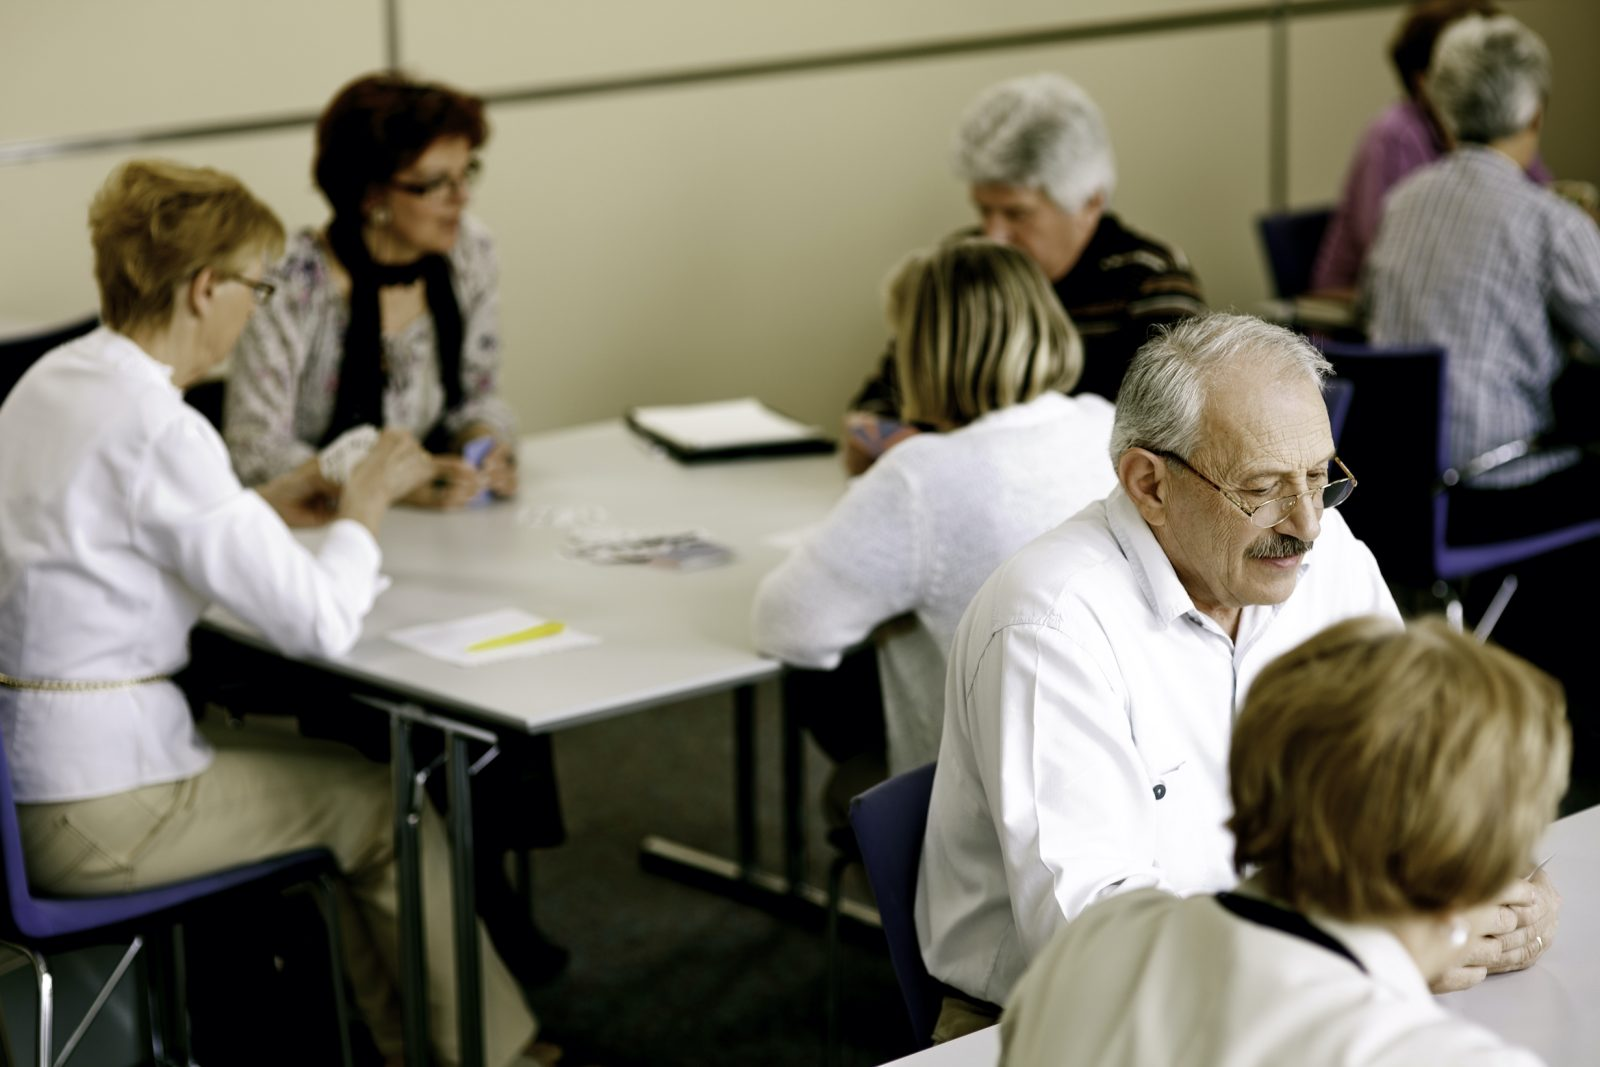 Seniors in an aged care facility